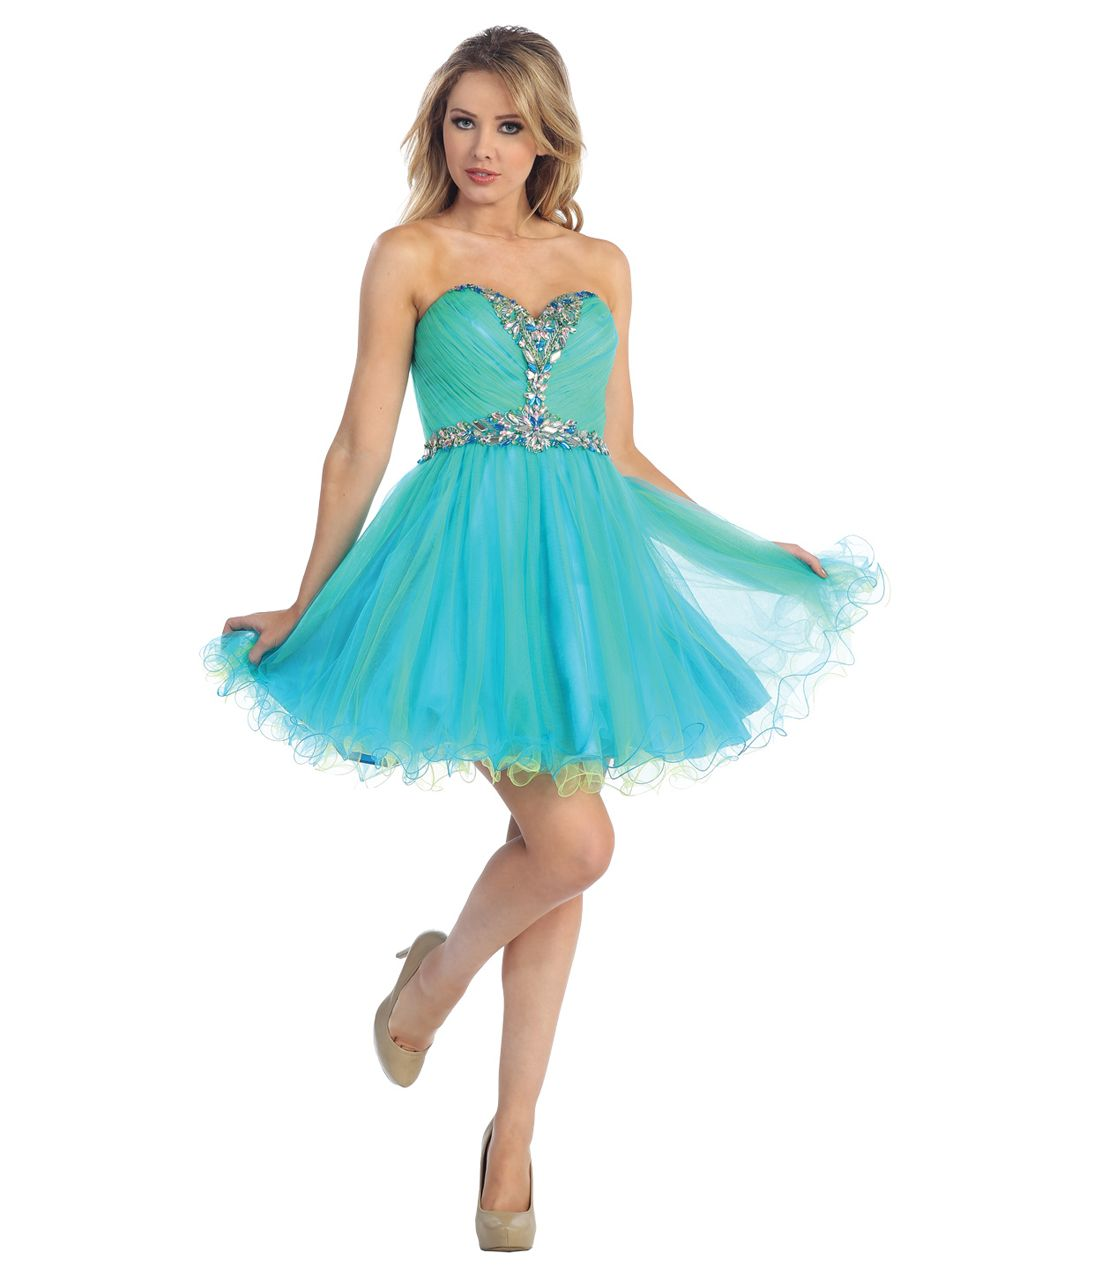 2013 Prom Dresses - Turquoise & Neon Green Chiffon Sweetheart ...